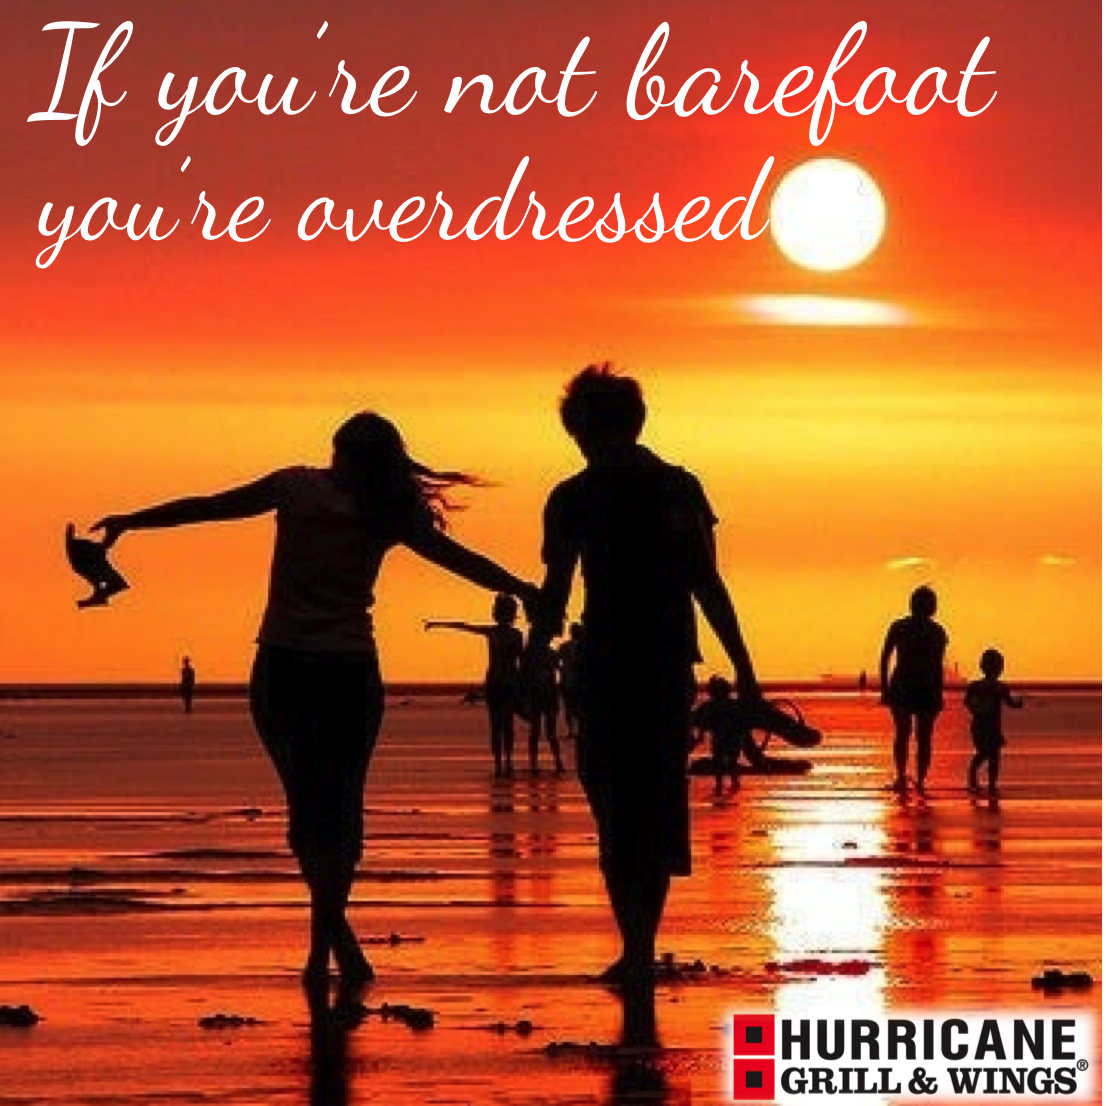 Barefoot Beach Quotes